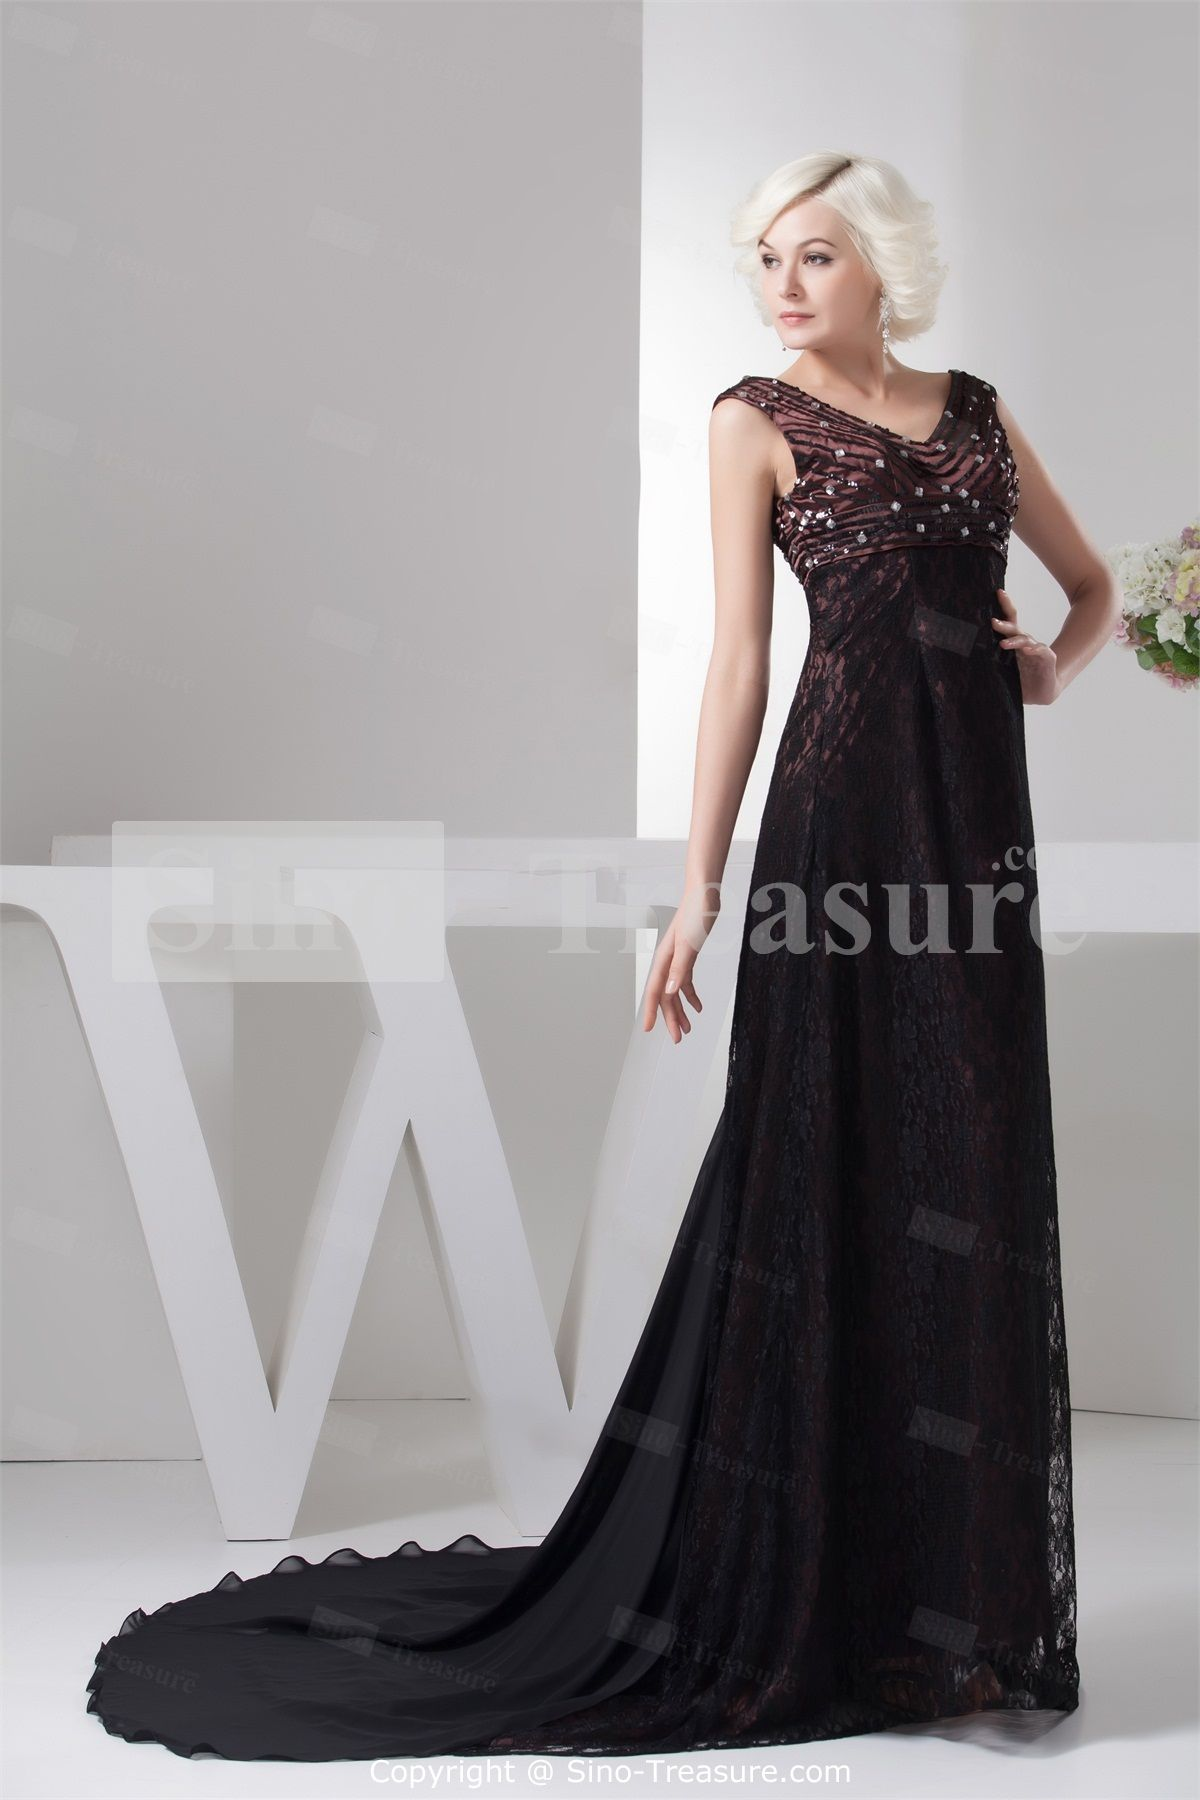 Red Brown/ Black Lace V-neck Capped Sleeves A-Line Beading Evening Dress -Wedding & Events-Special Occasion Dresses-Evening Dresses   US$199.99